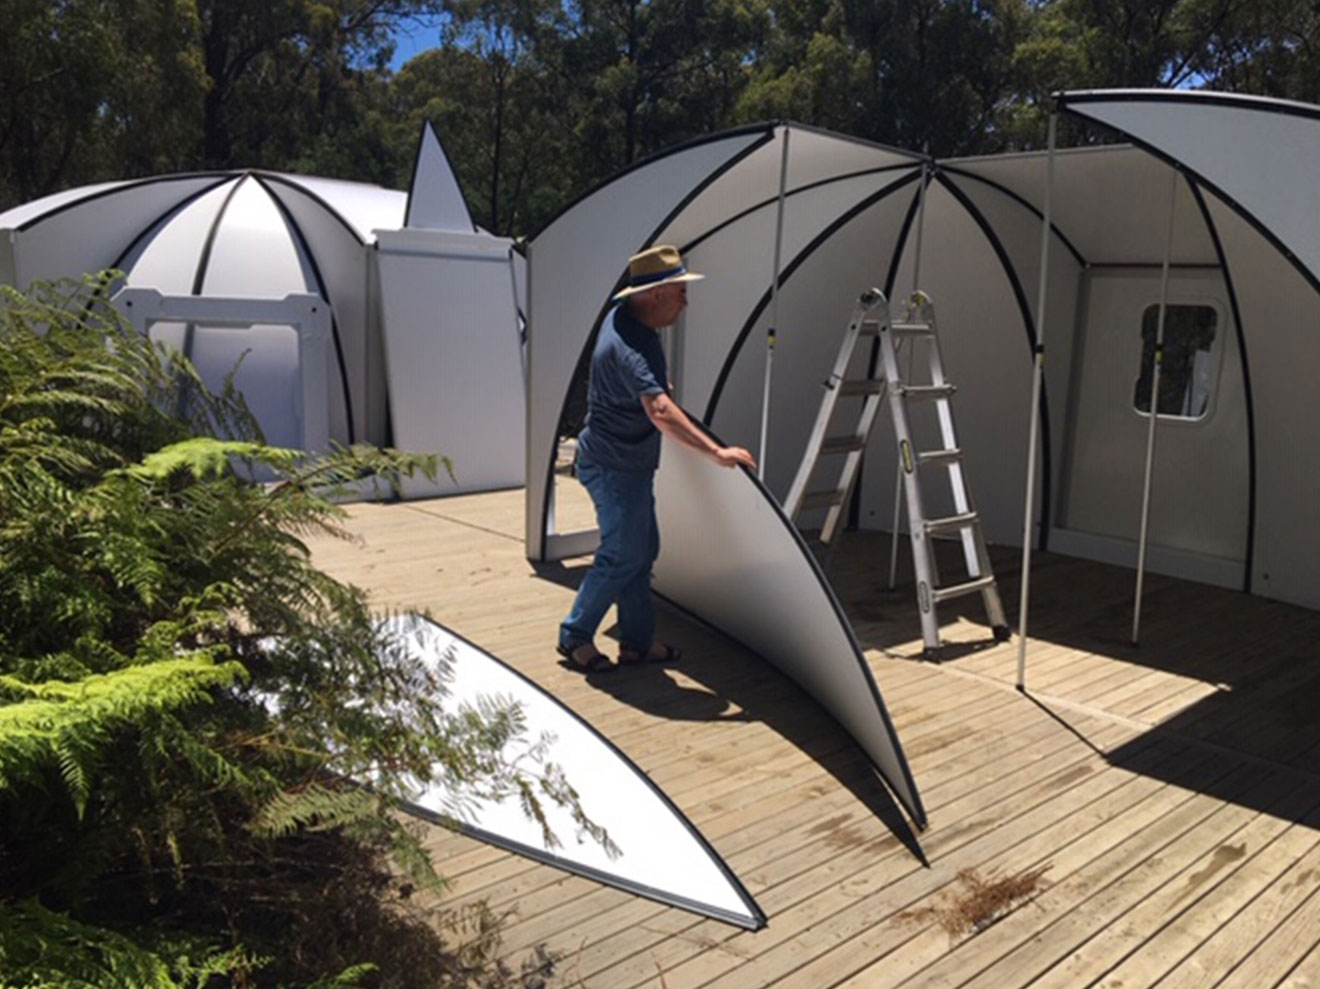 Instant - The basic 16 square meter dome can easily be assembled by 2 people in 2 hours. It only requires a level surface to be erected anywhere you go!